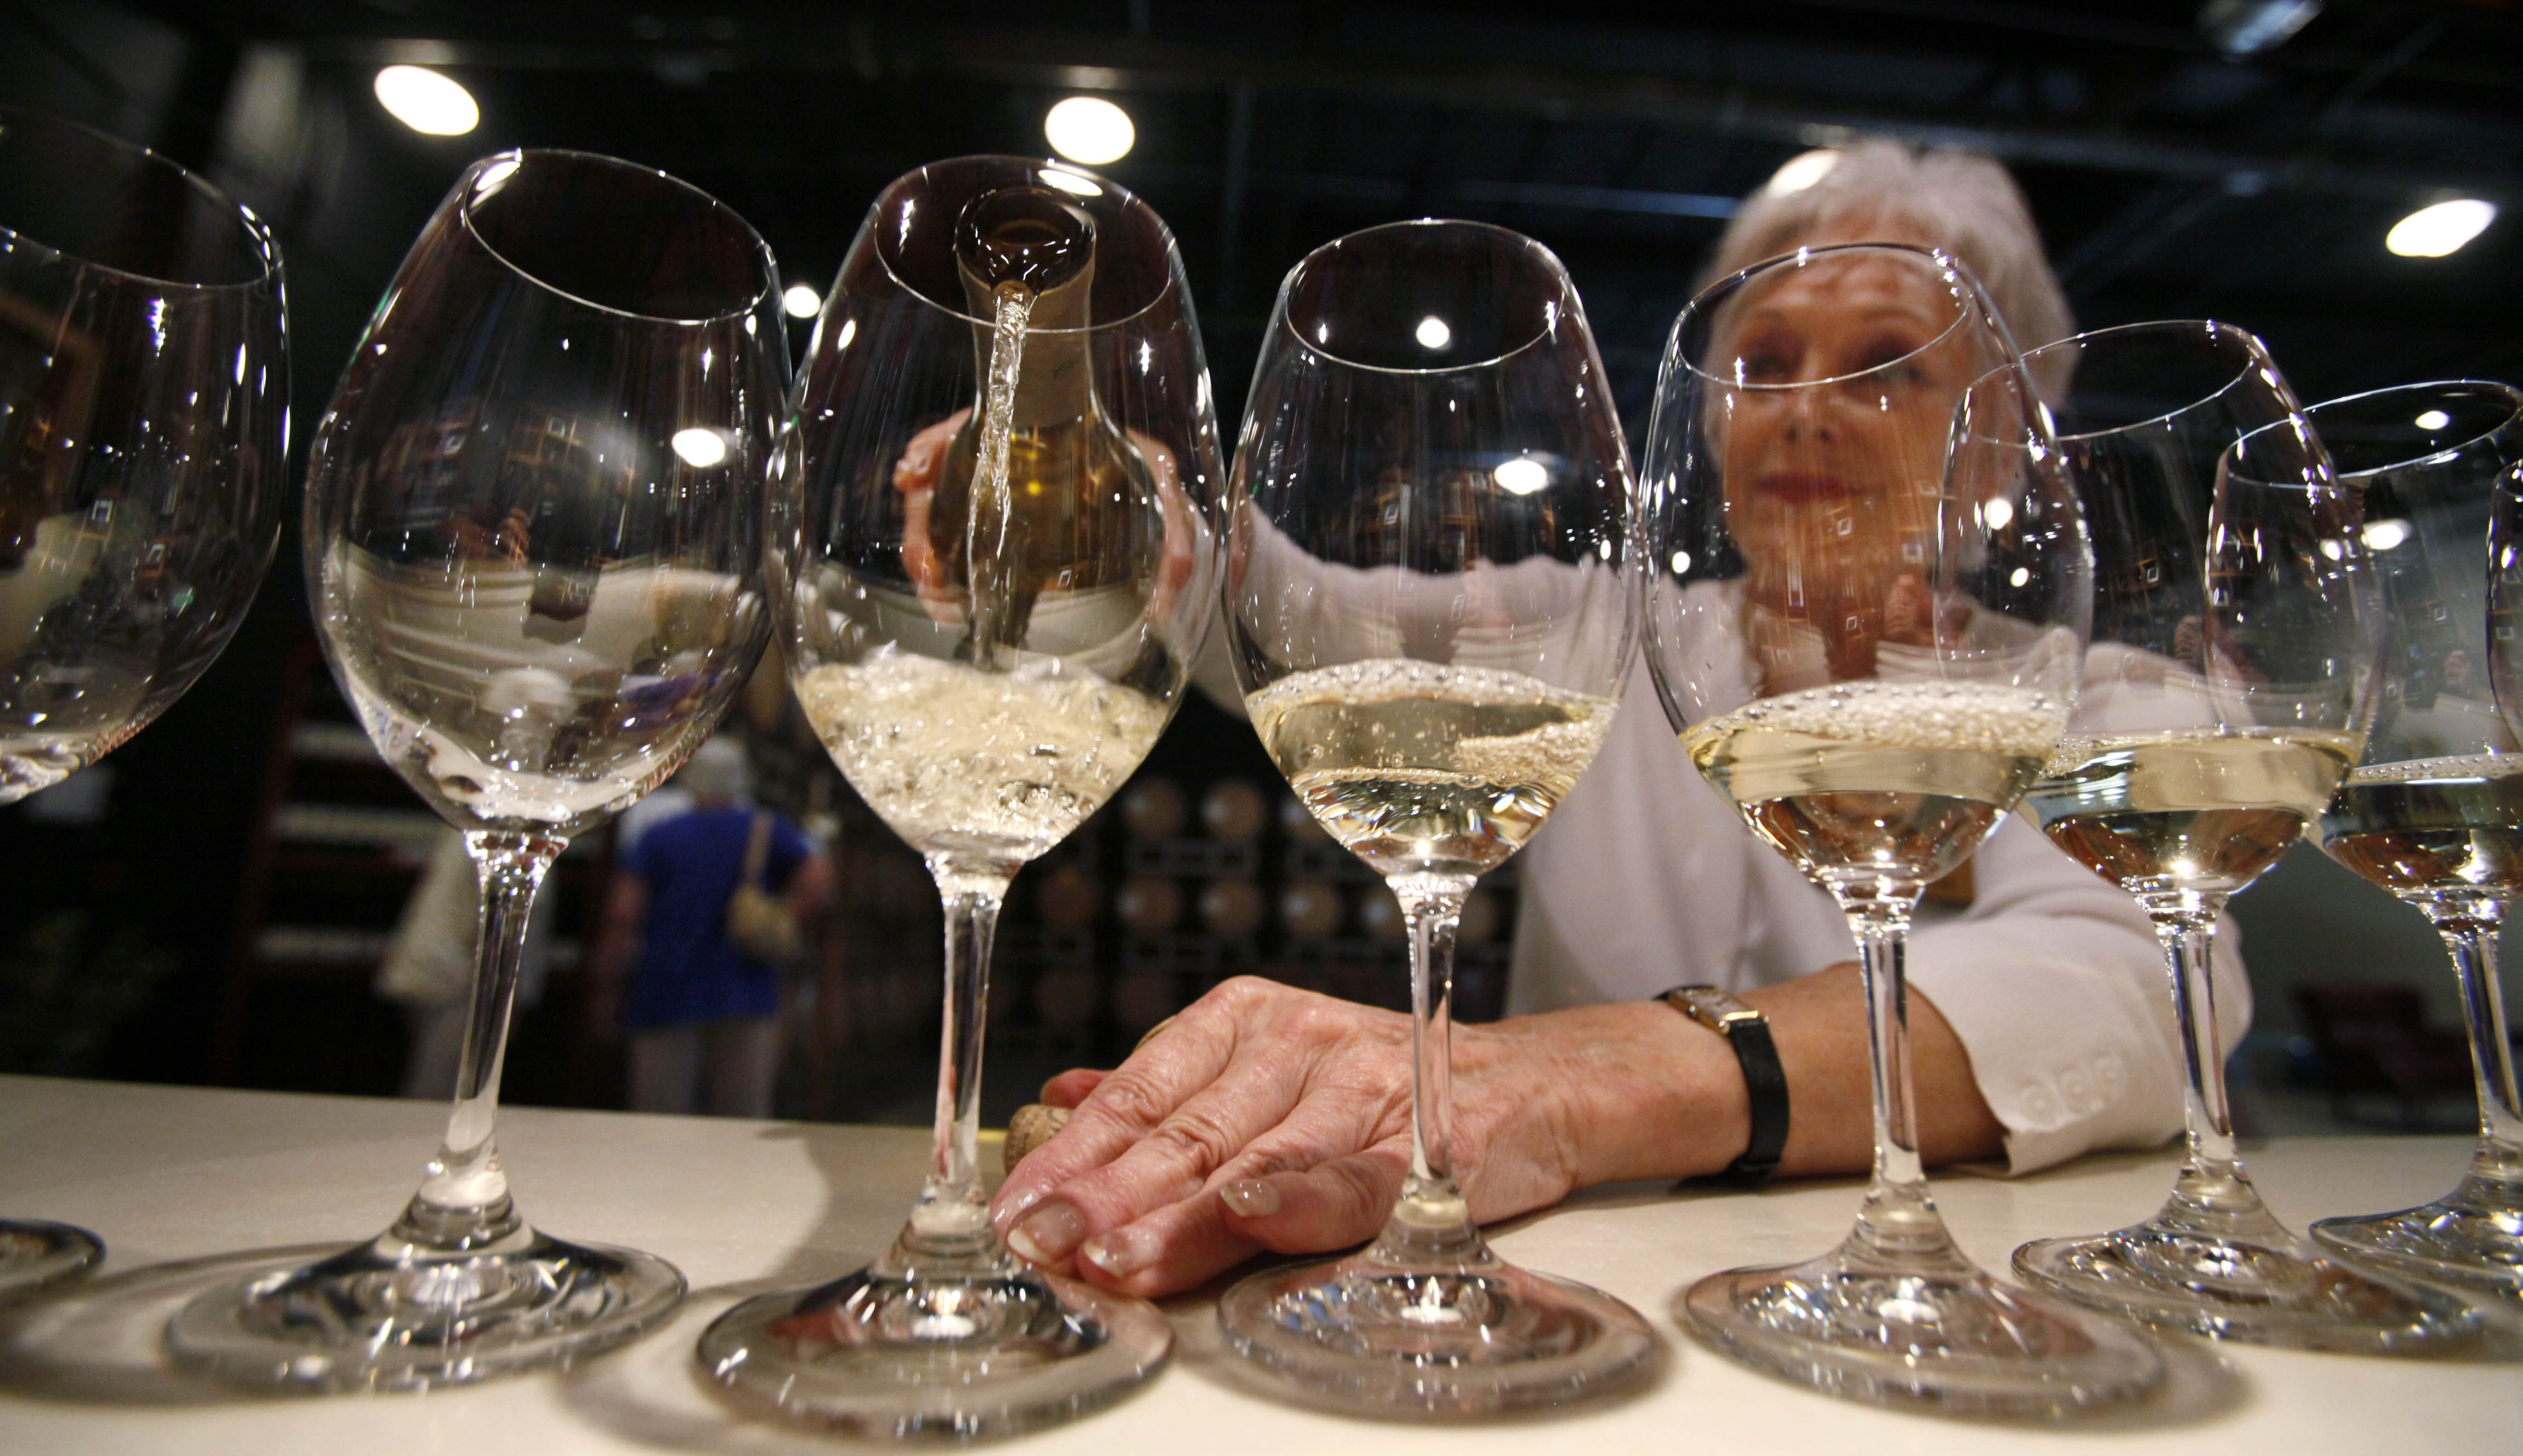 Winemakers cultivate growing China market | The Spokesman-Review